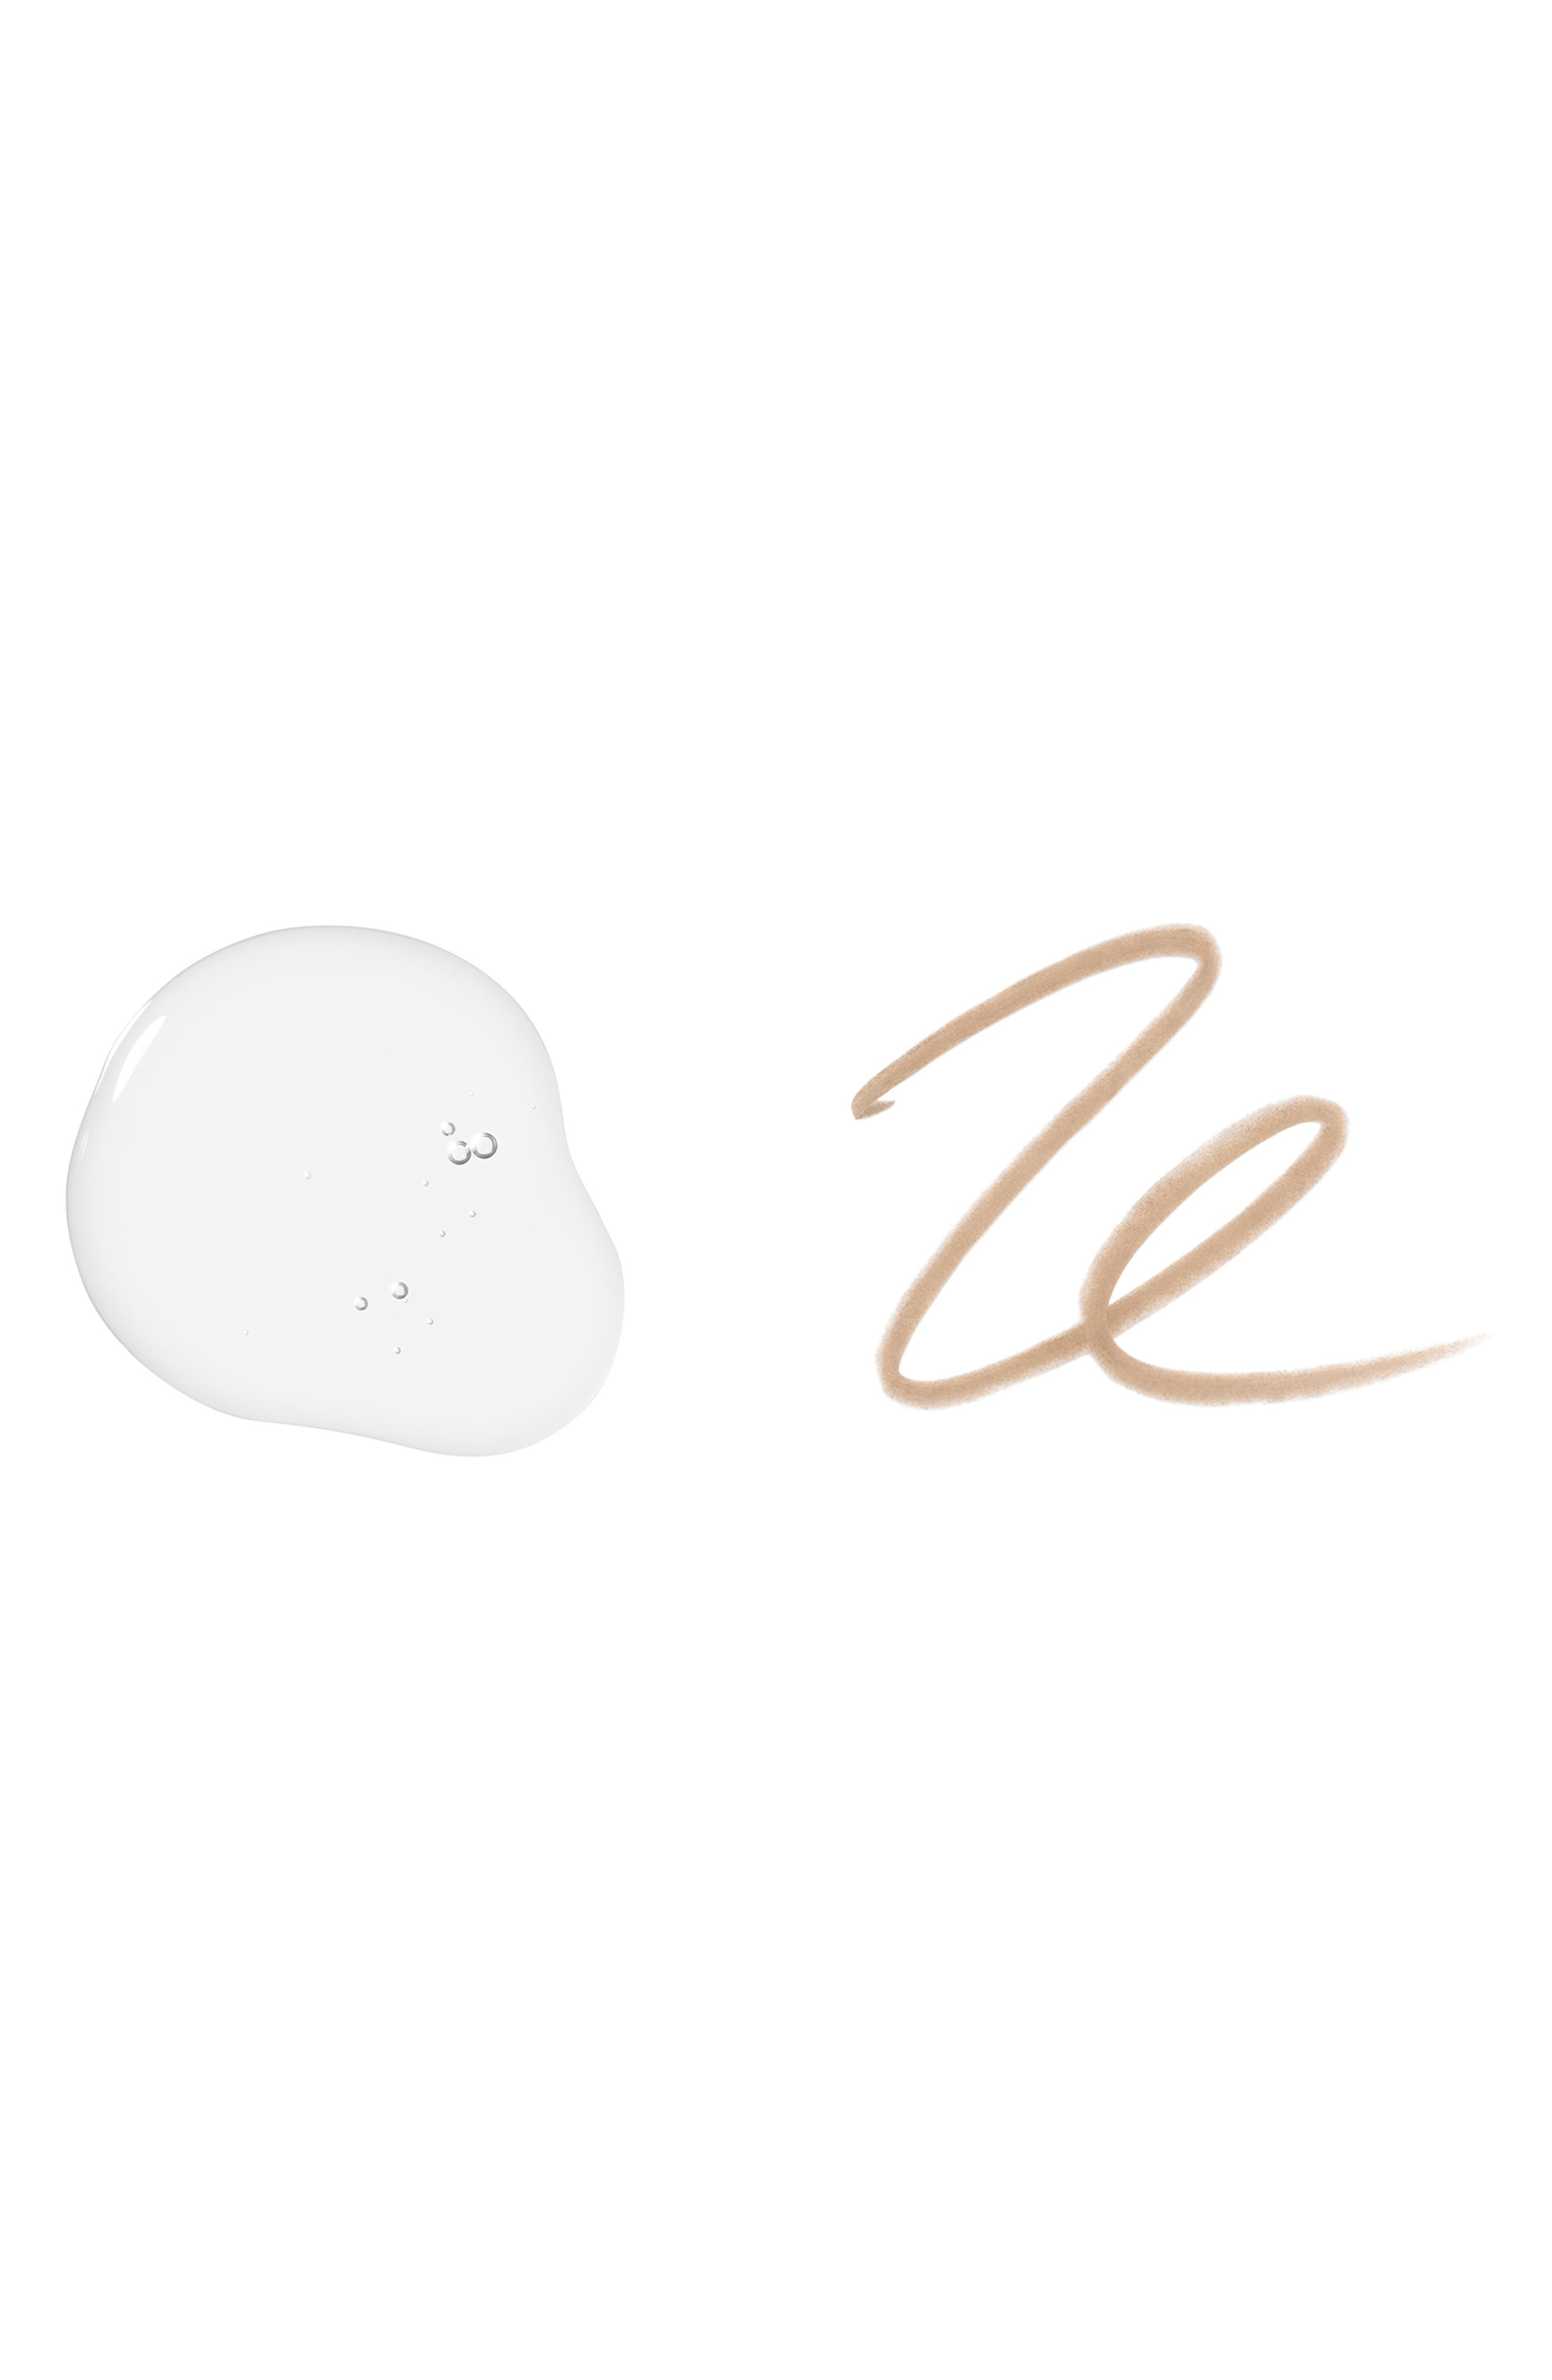 Benefit Brows Come Naturally Duo,                             Alternate thumbnail 4, color,                             01 LIGHT/COOL BLONDE